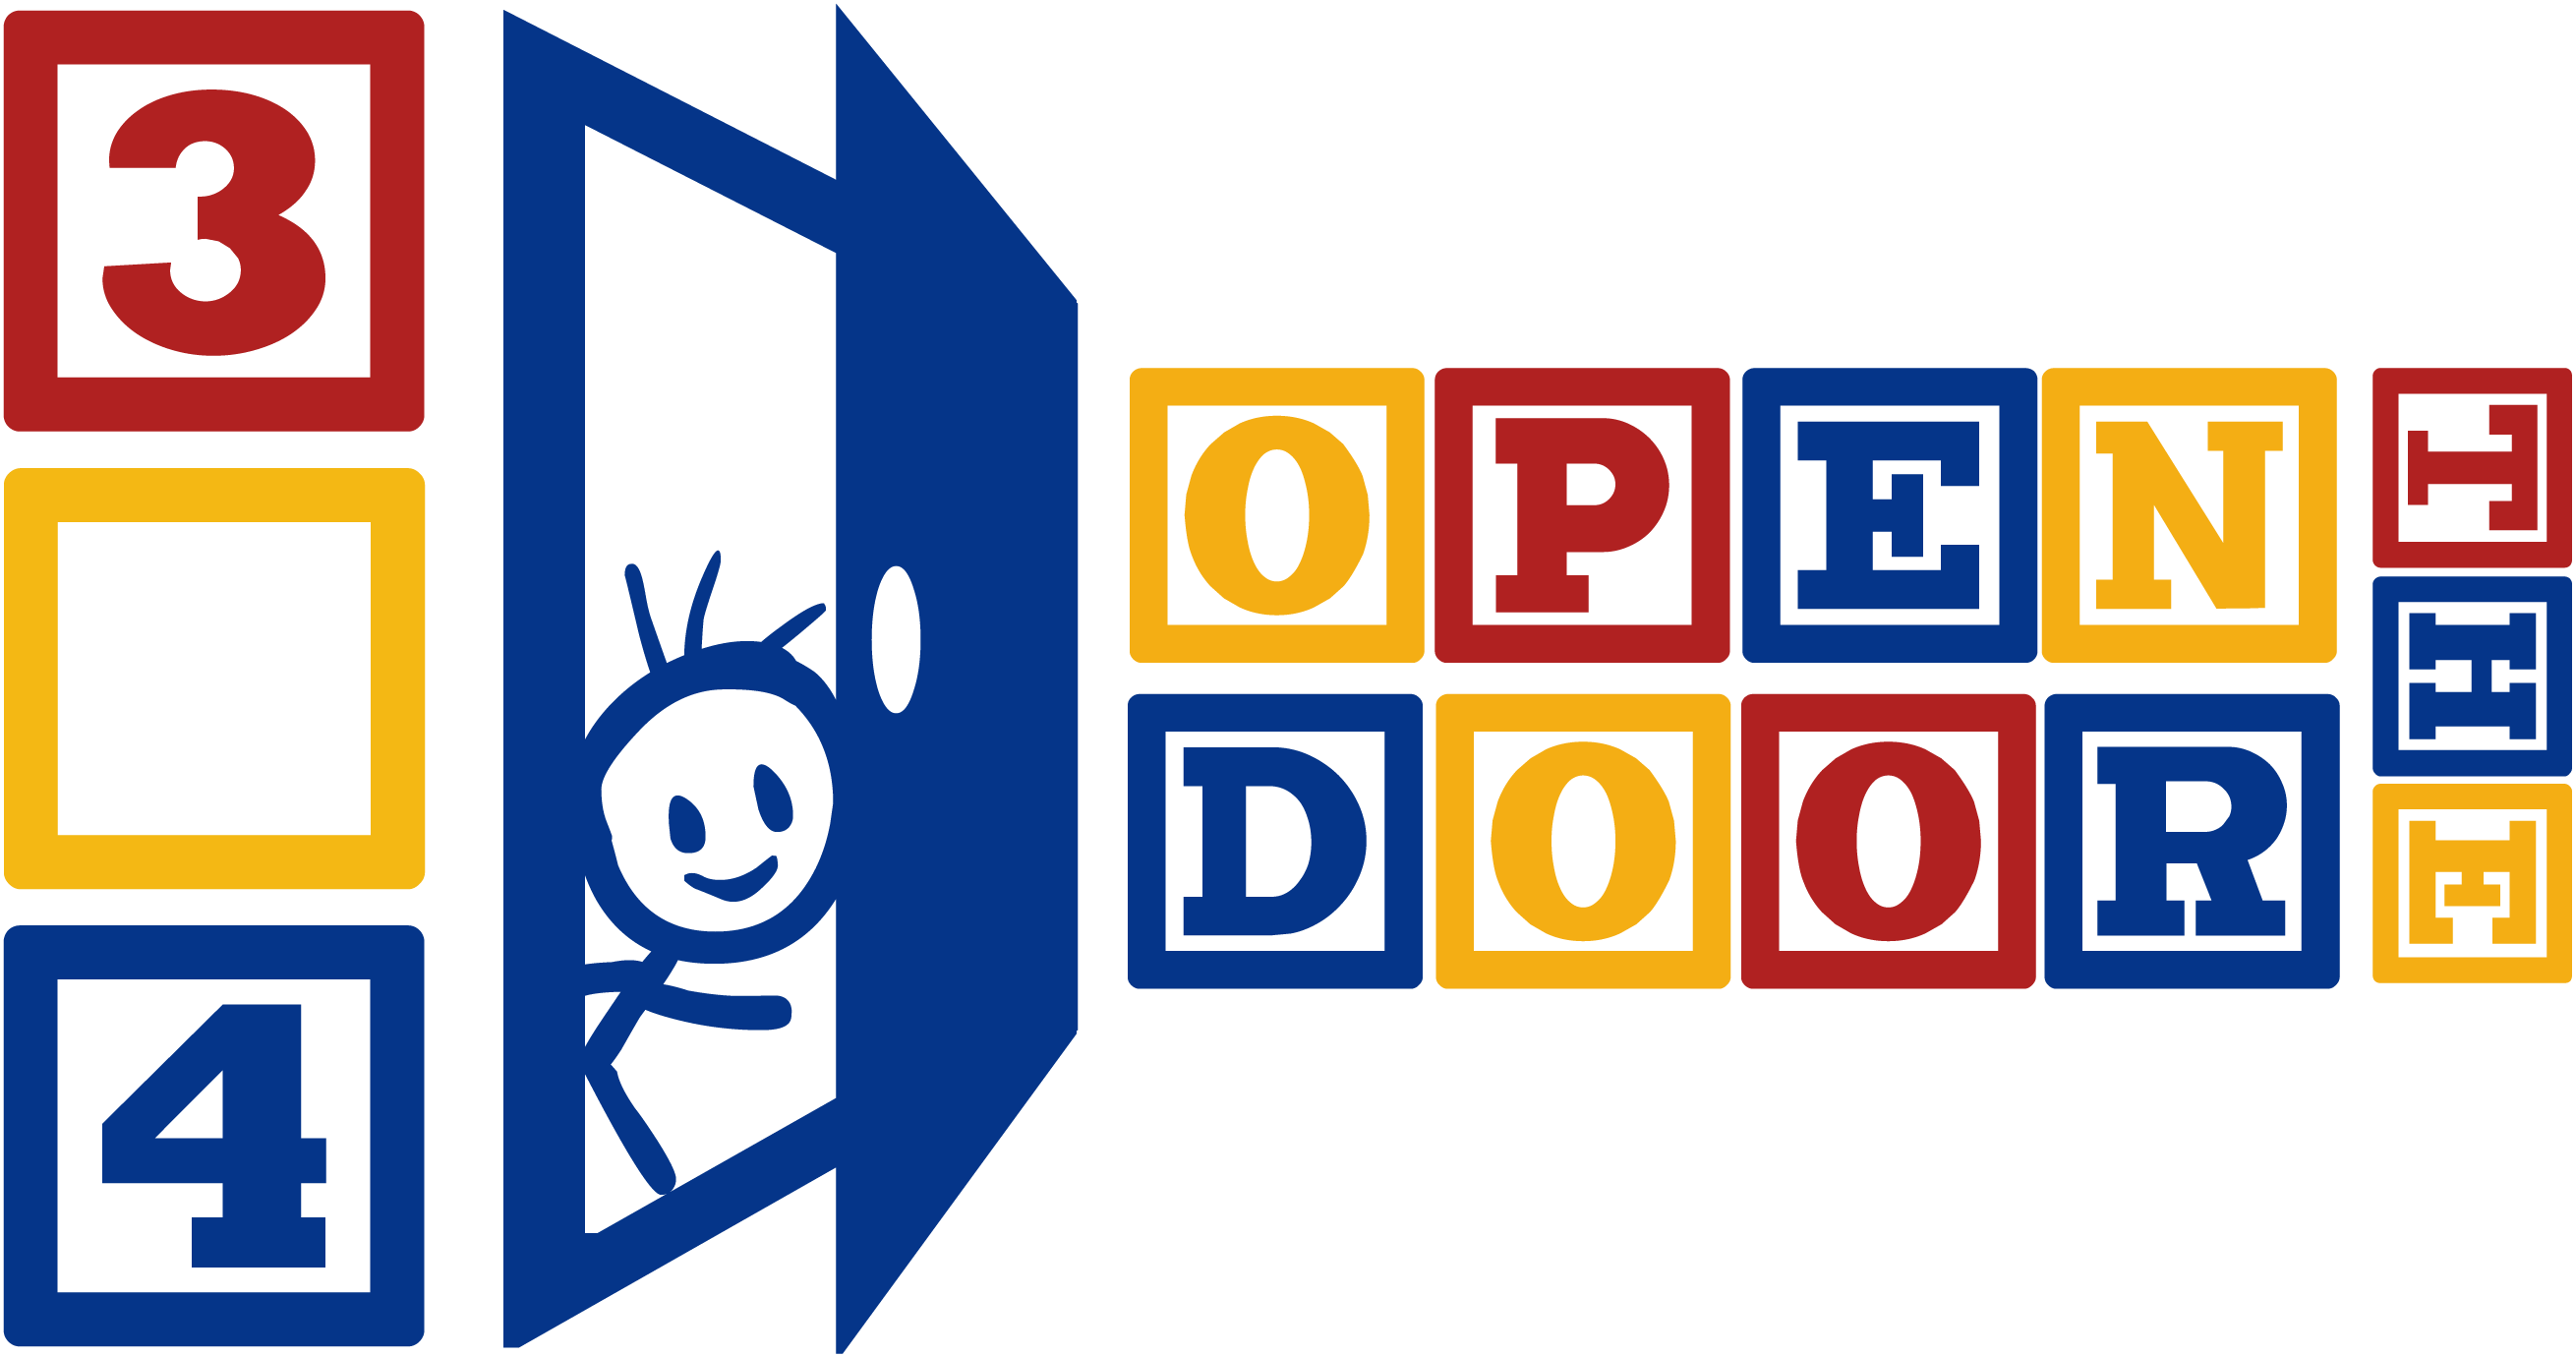 THREE FOUR OPEN THE DOOR, LLC